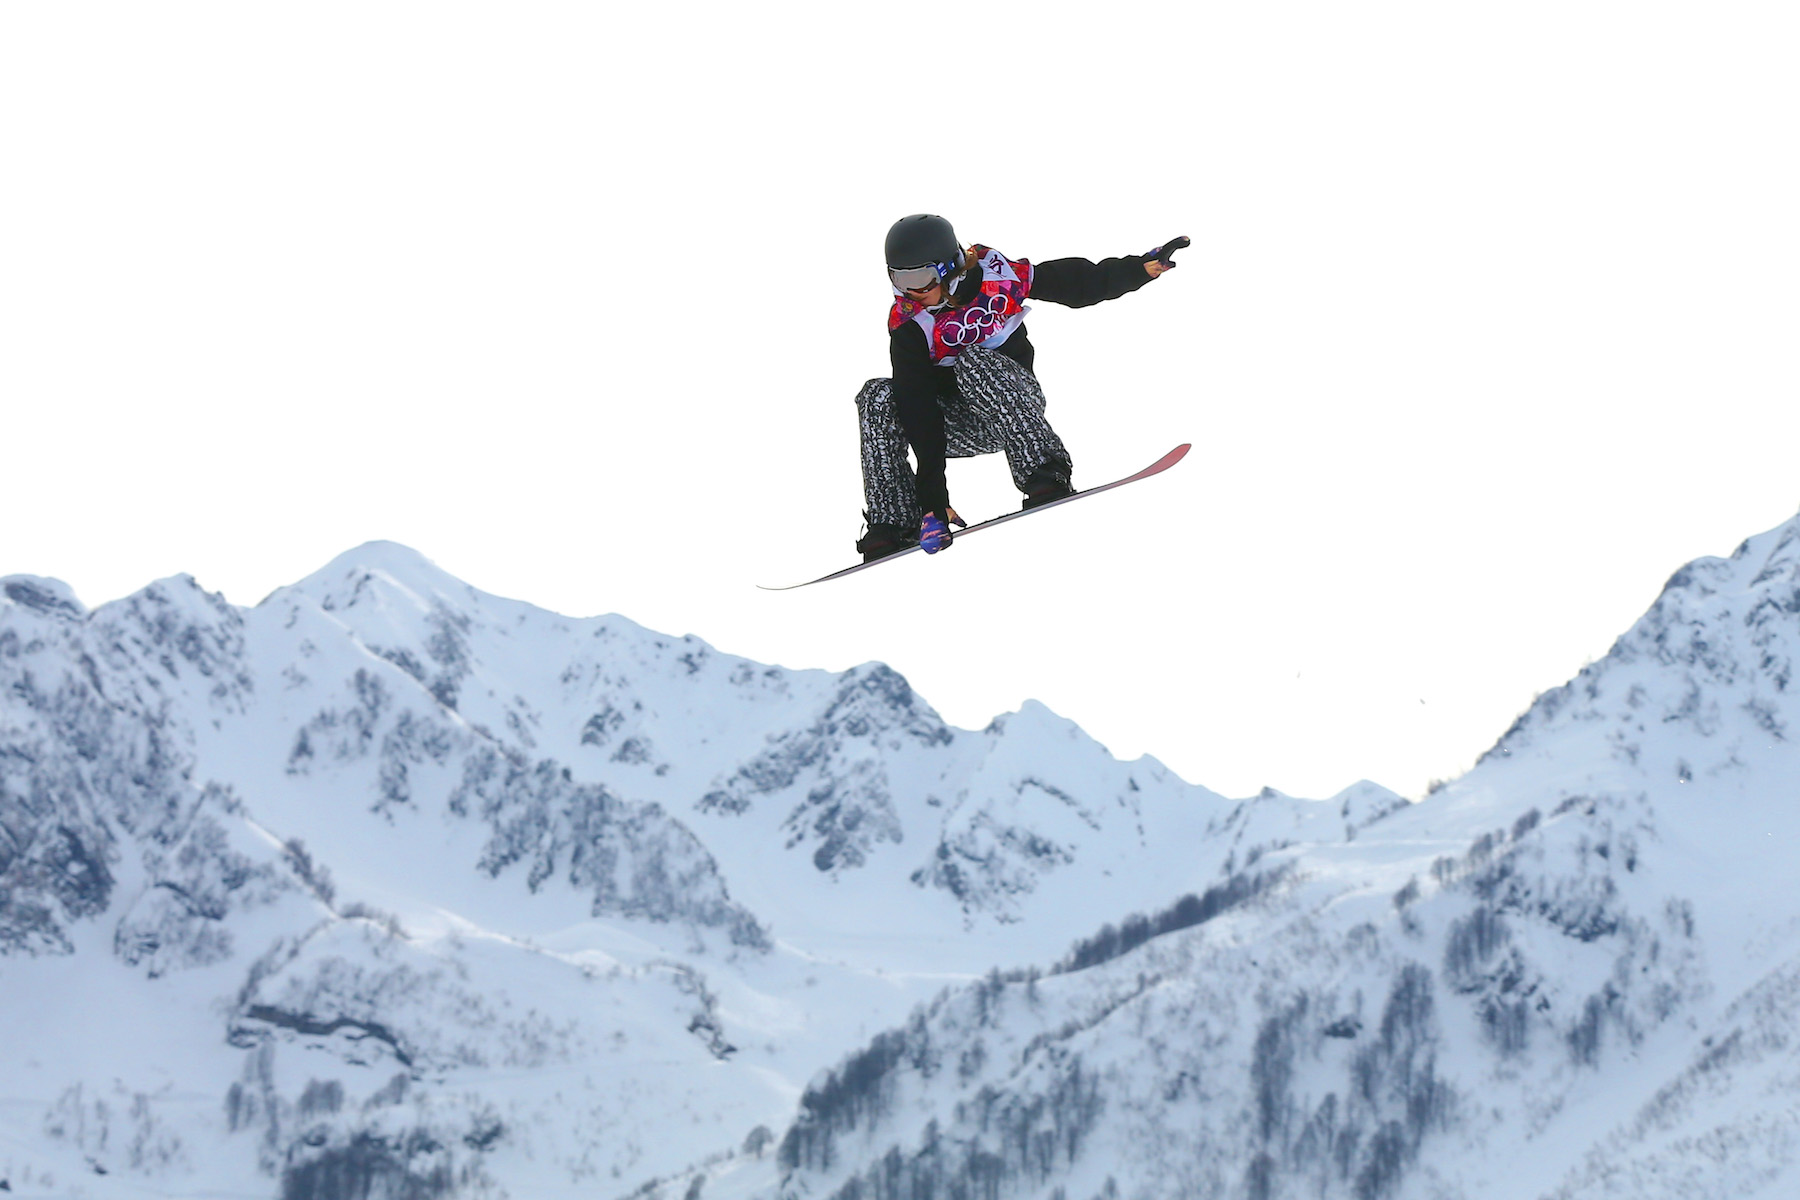 Snowboarding at the Sochi Winter Olympics